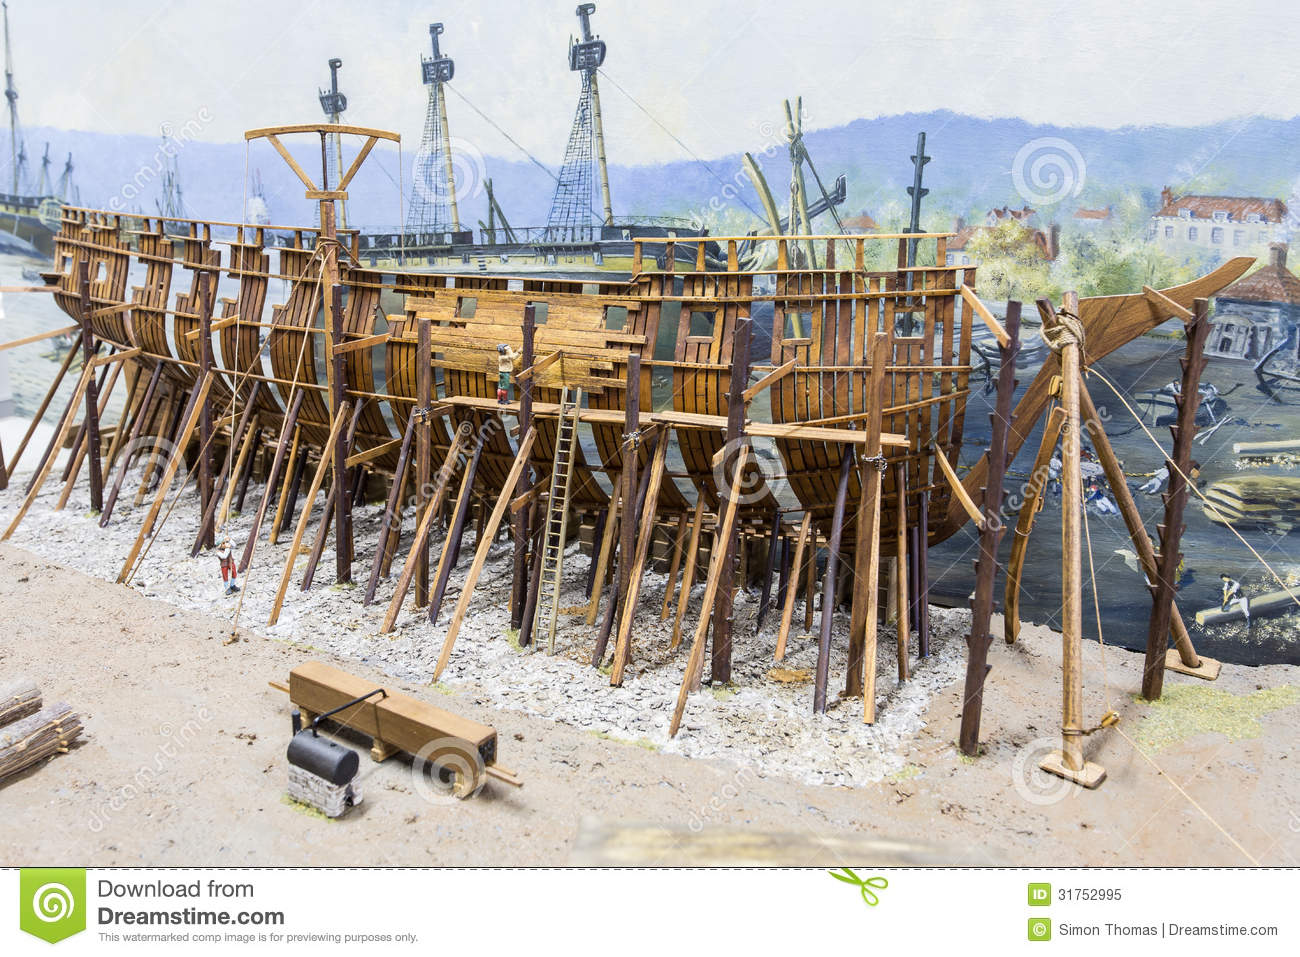 Ship Building stock image. Image of scaffolding, ship - 31752995